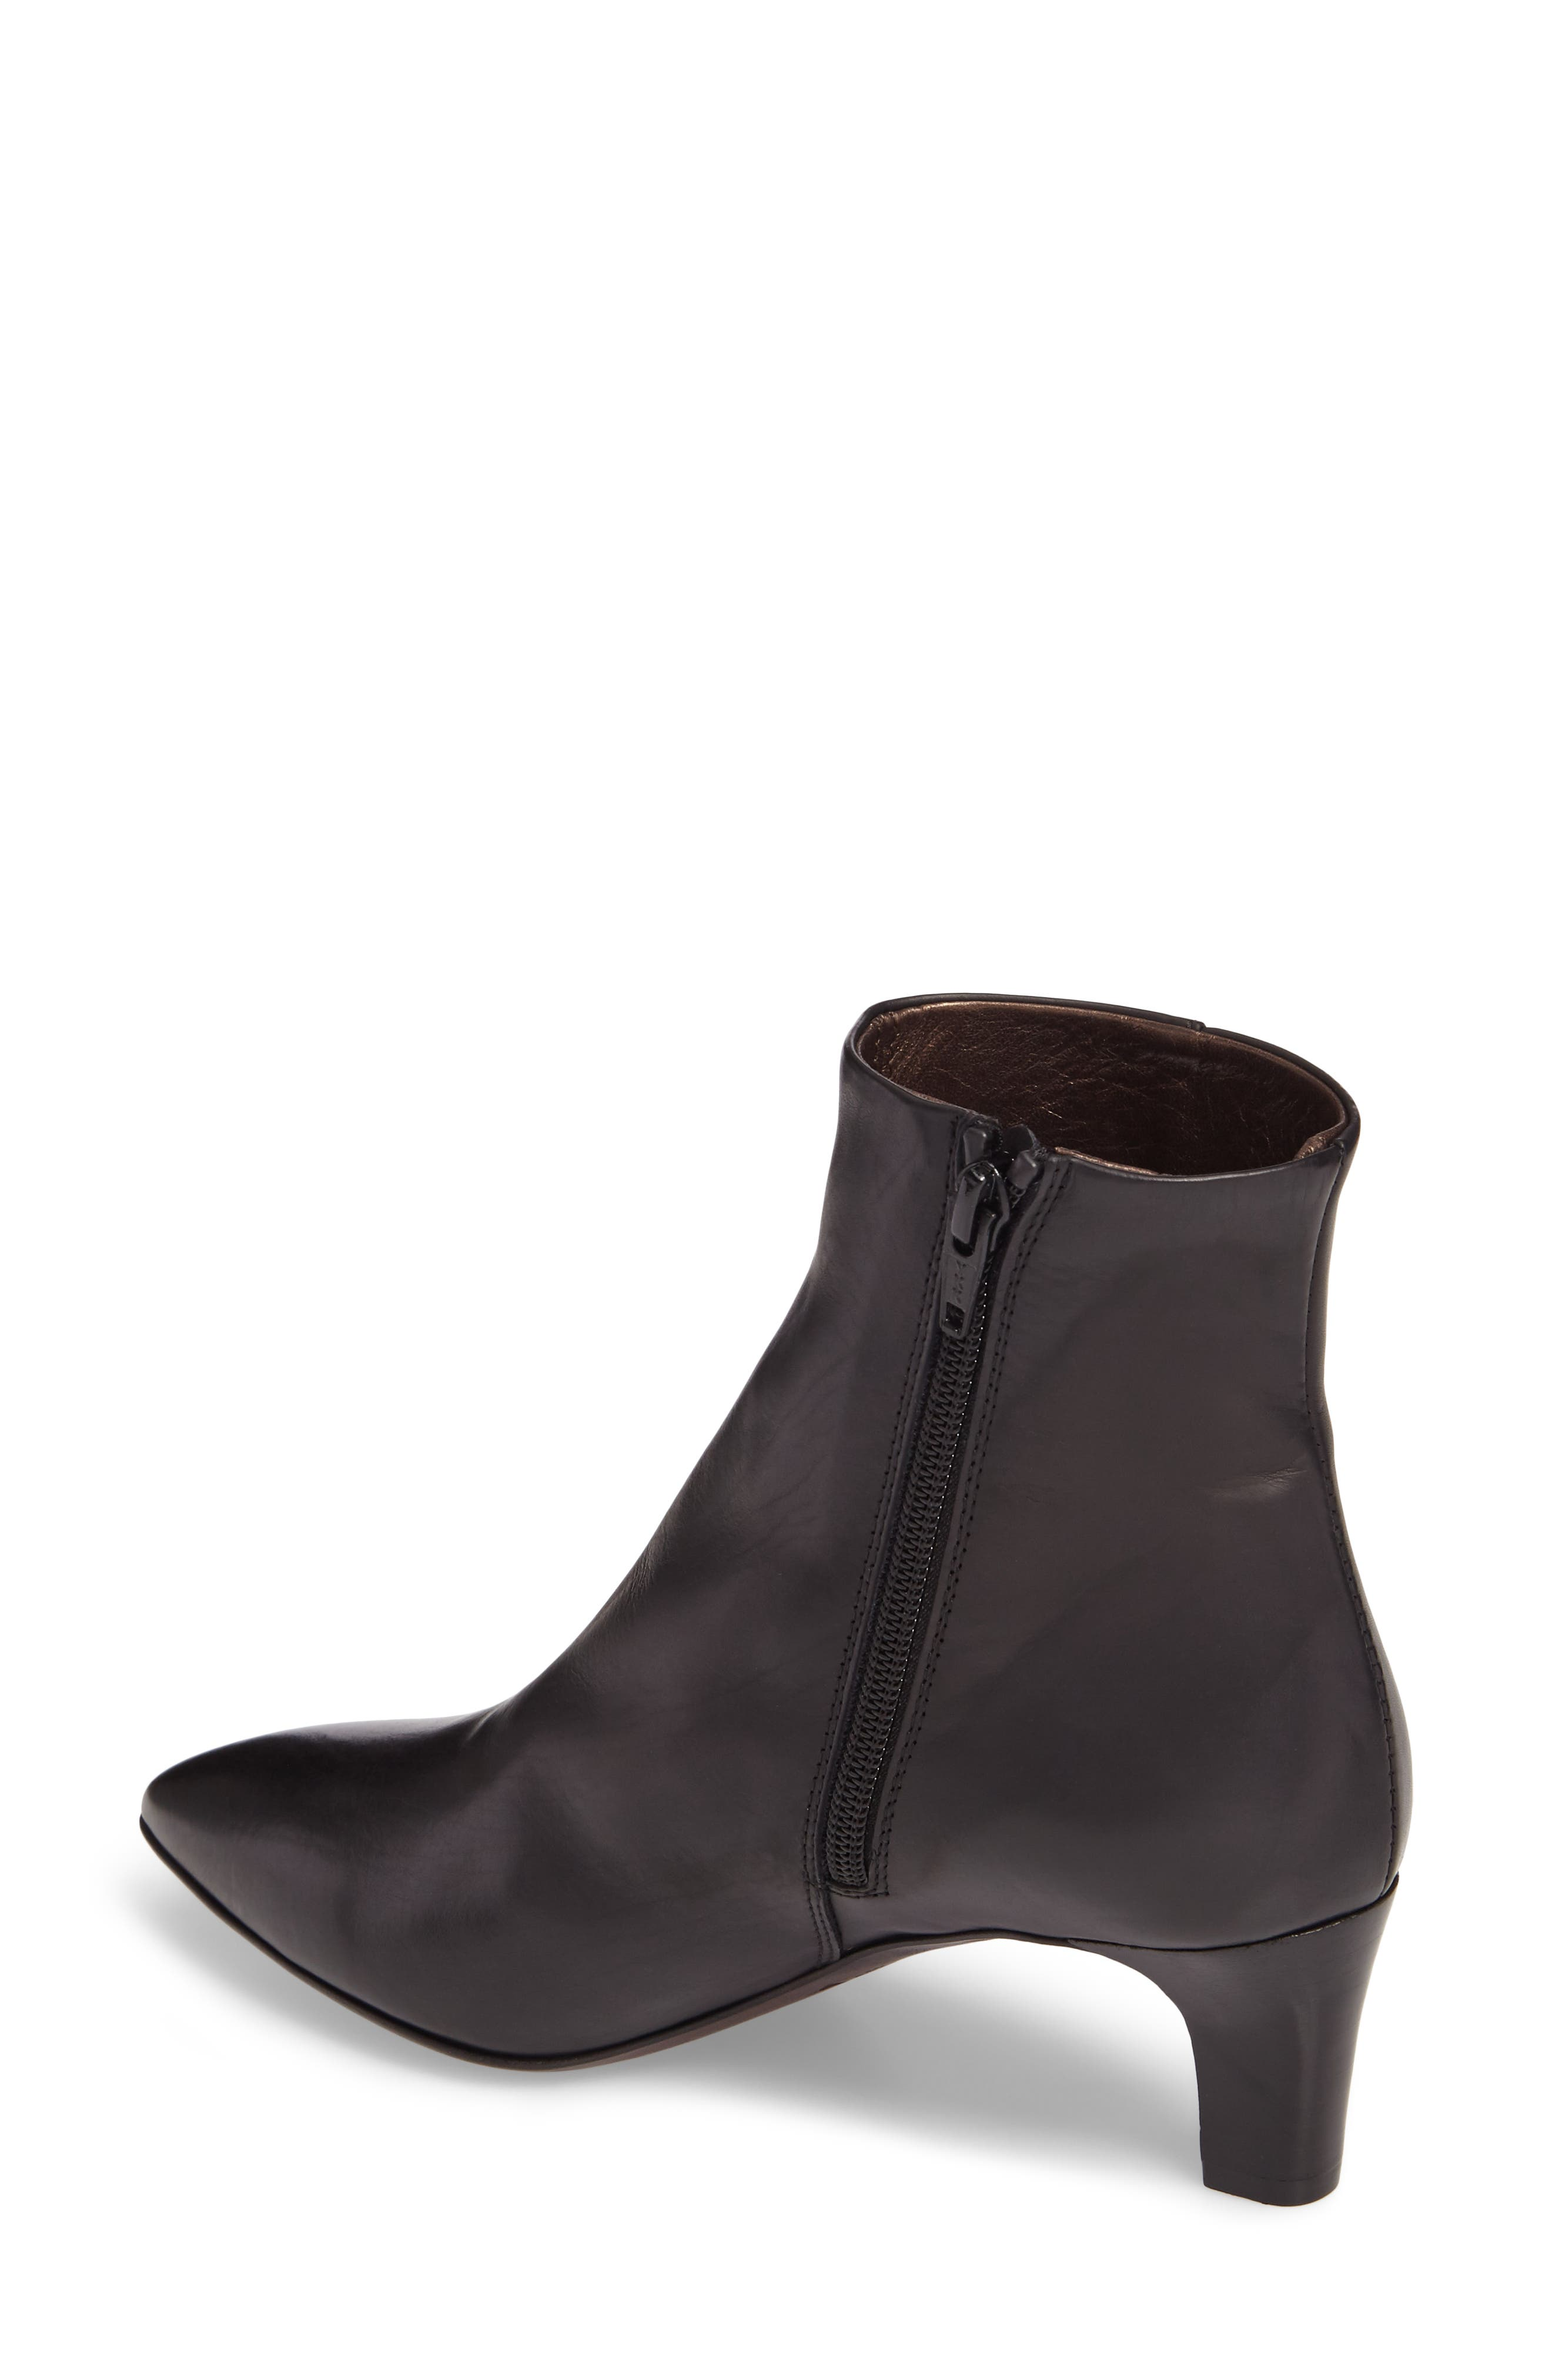 AG Pointed Toe Bootie,                             Alternate thumbnail 2, color,                             001